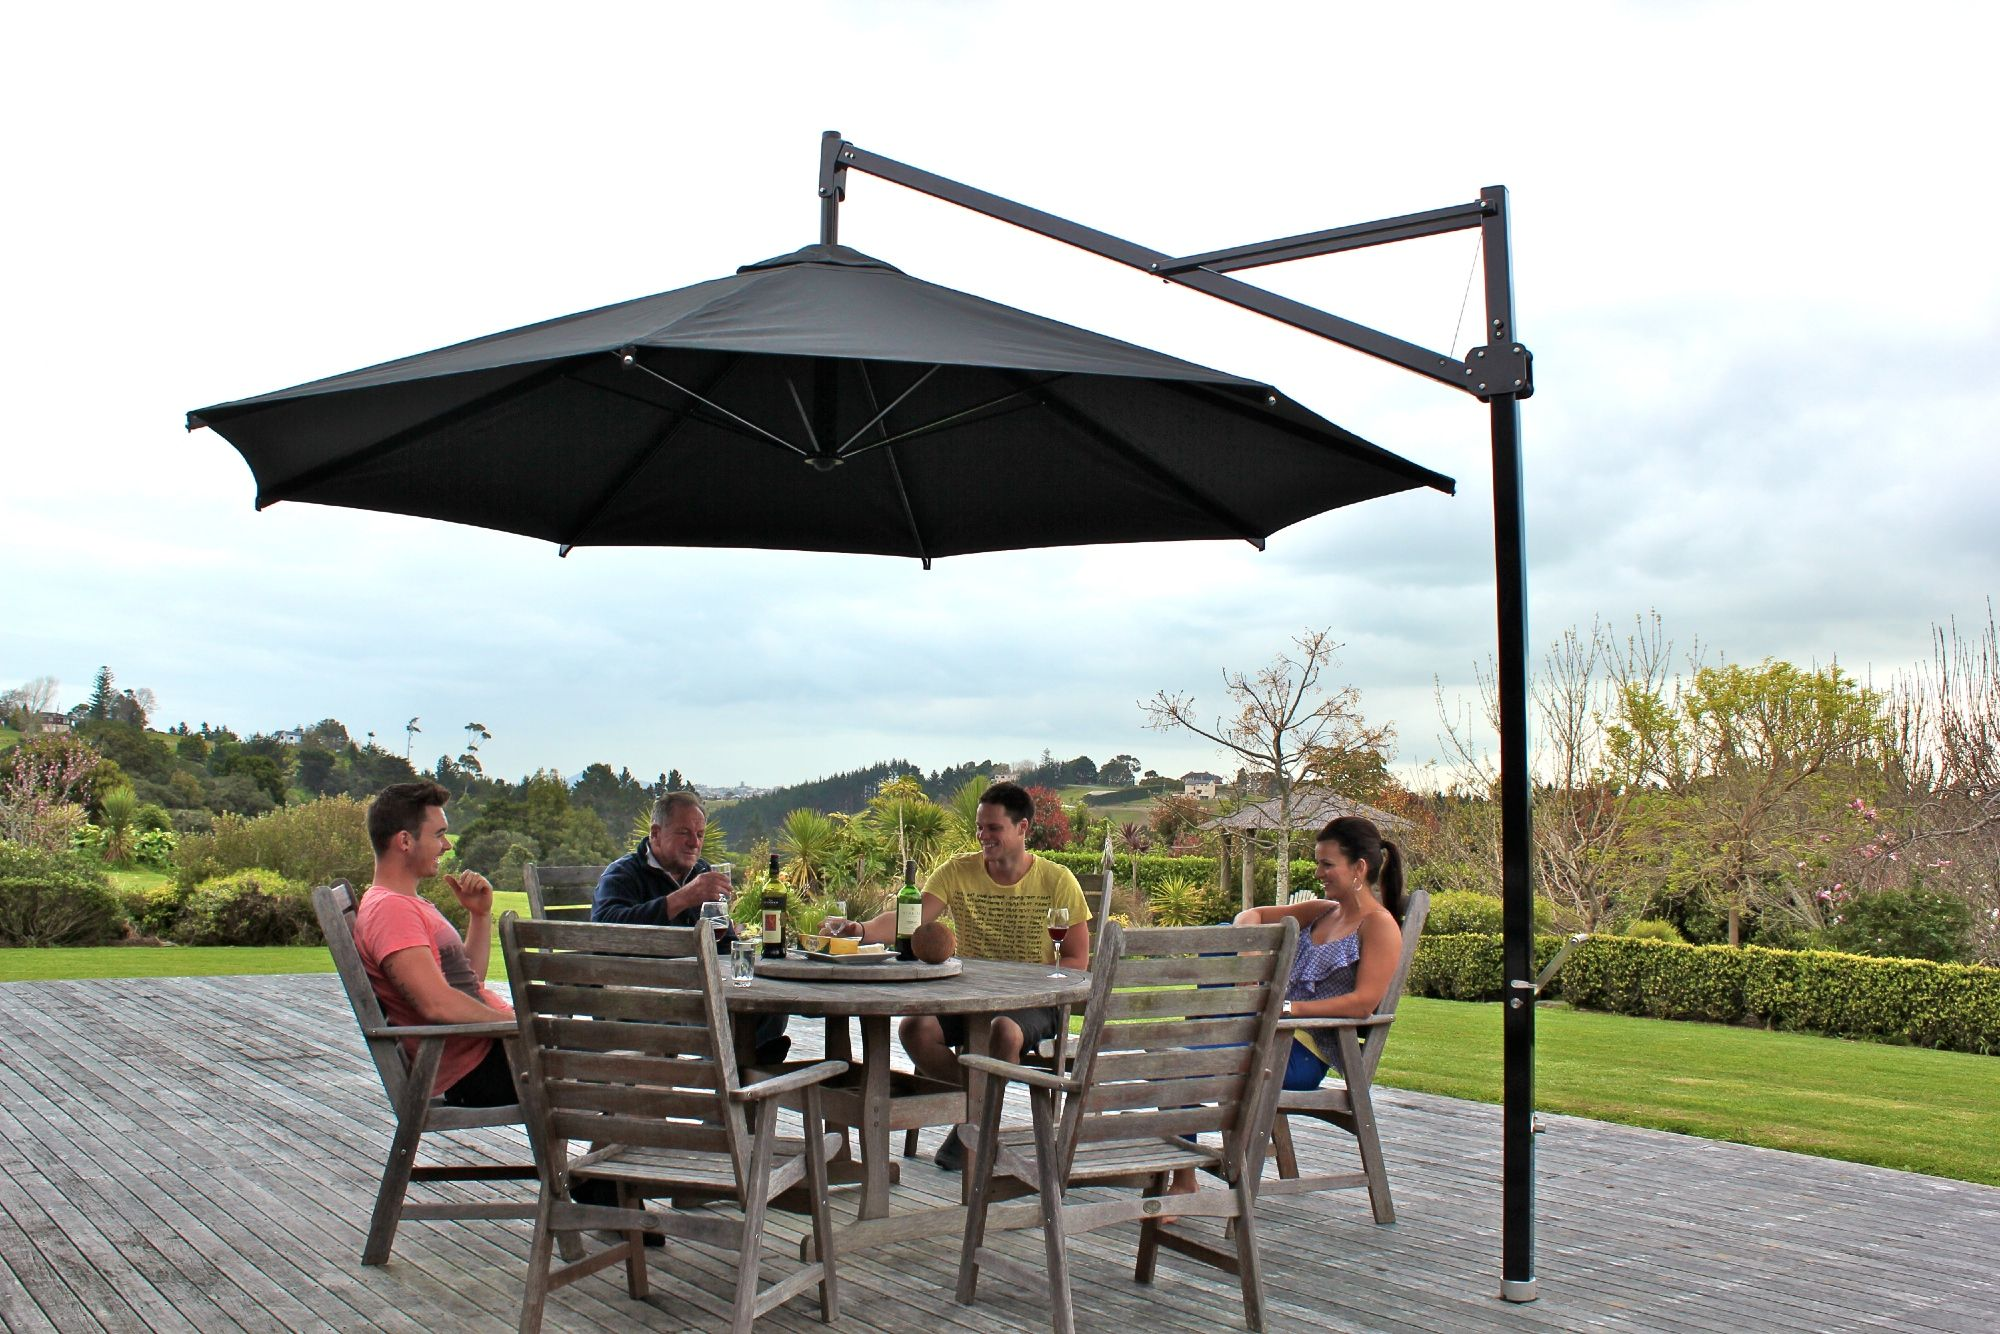 Proformance Shades Made Industrial And Residential Shades   Including Large  Umbrellas, Patio Umbrellas, Swingshade